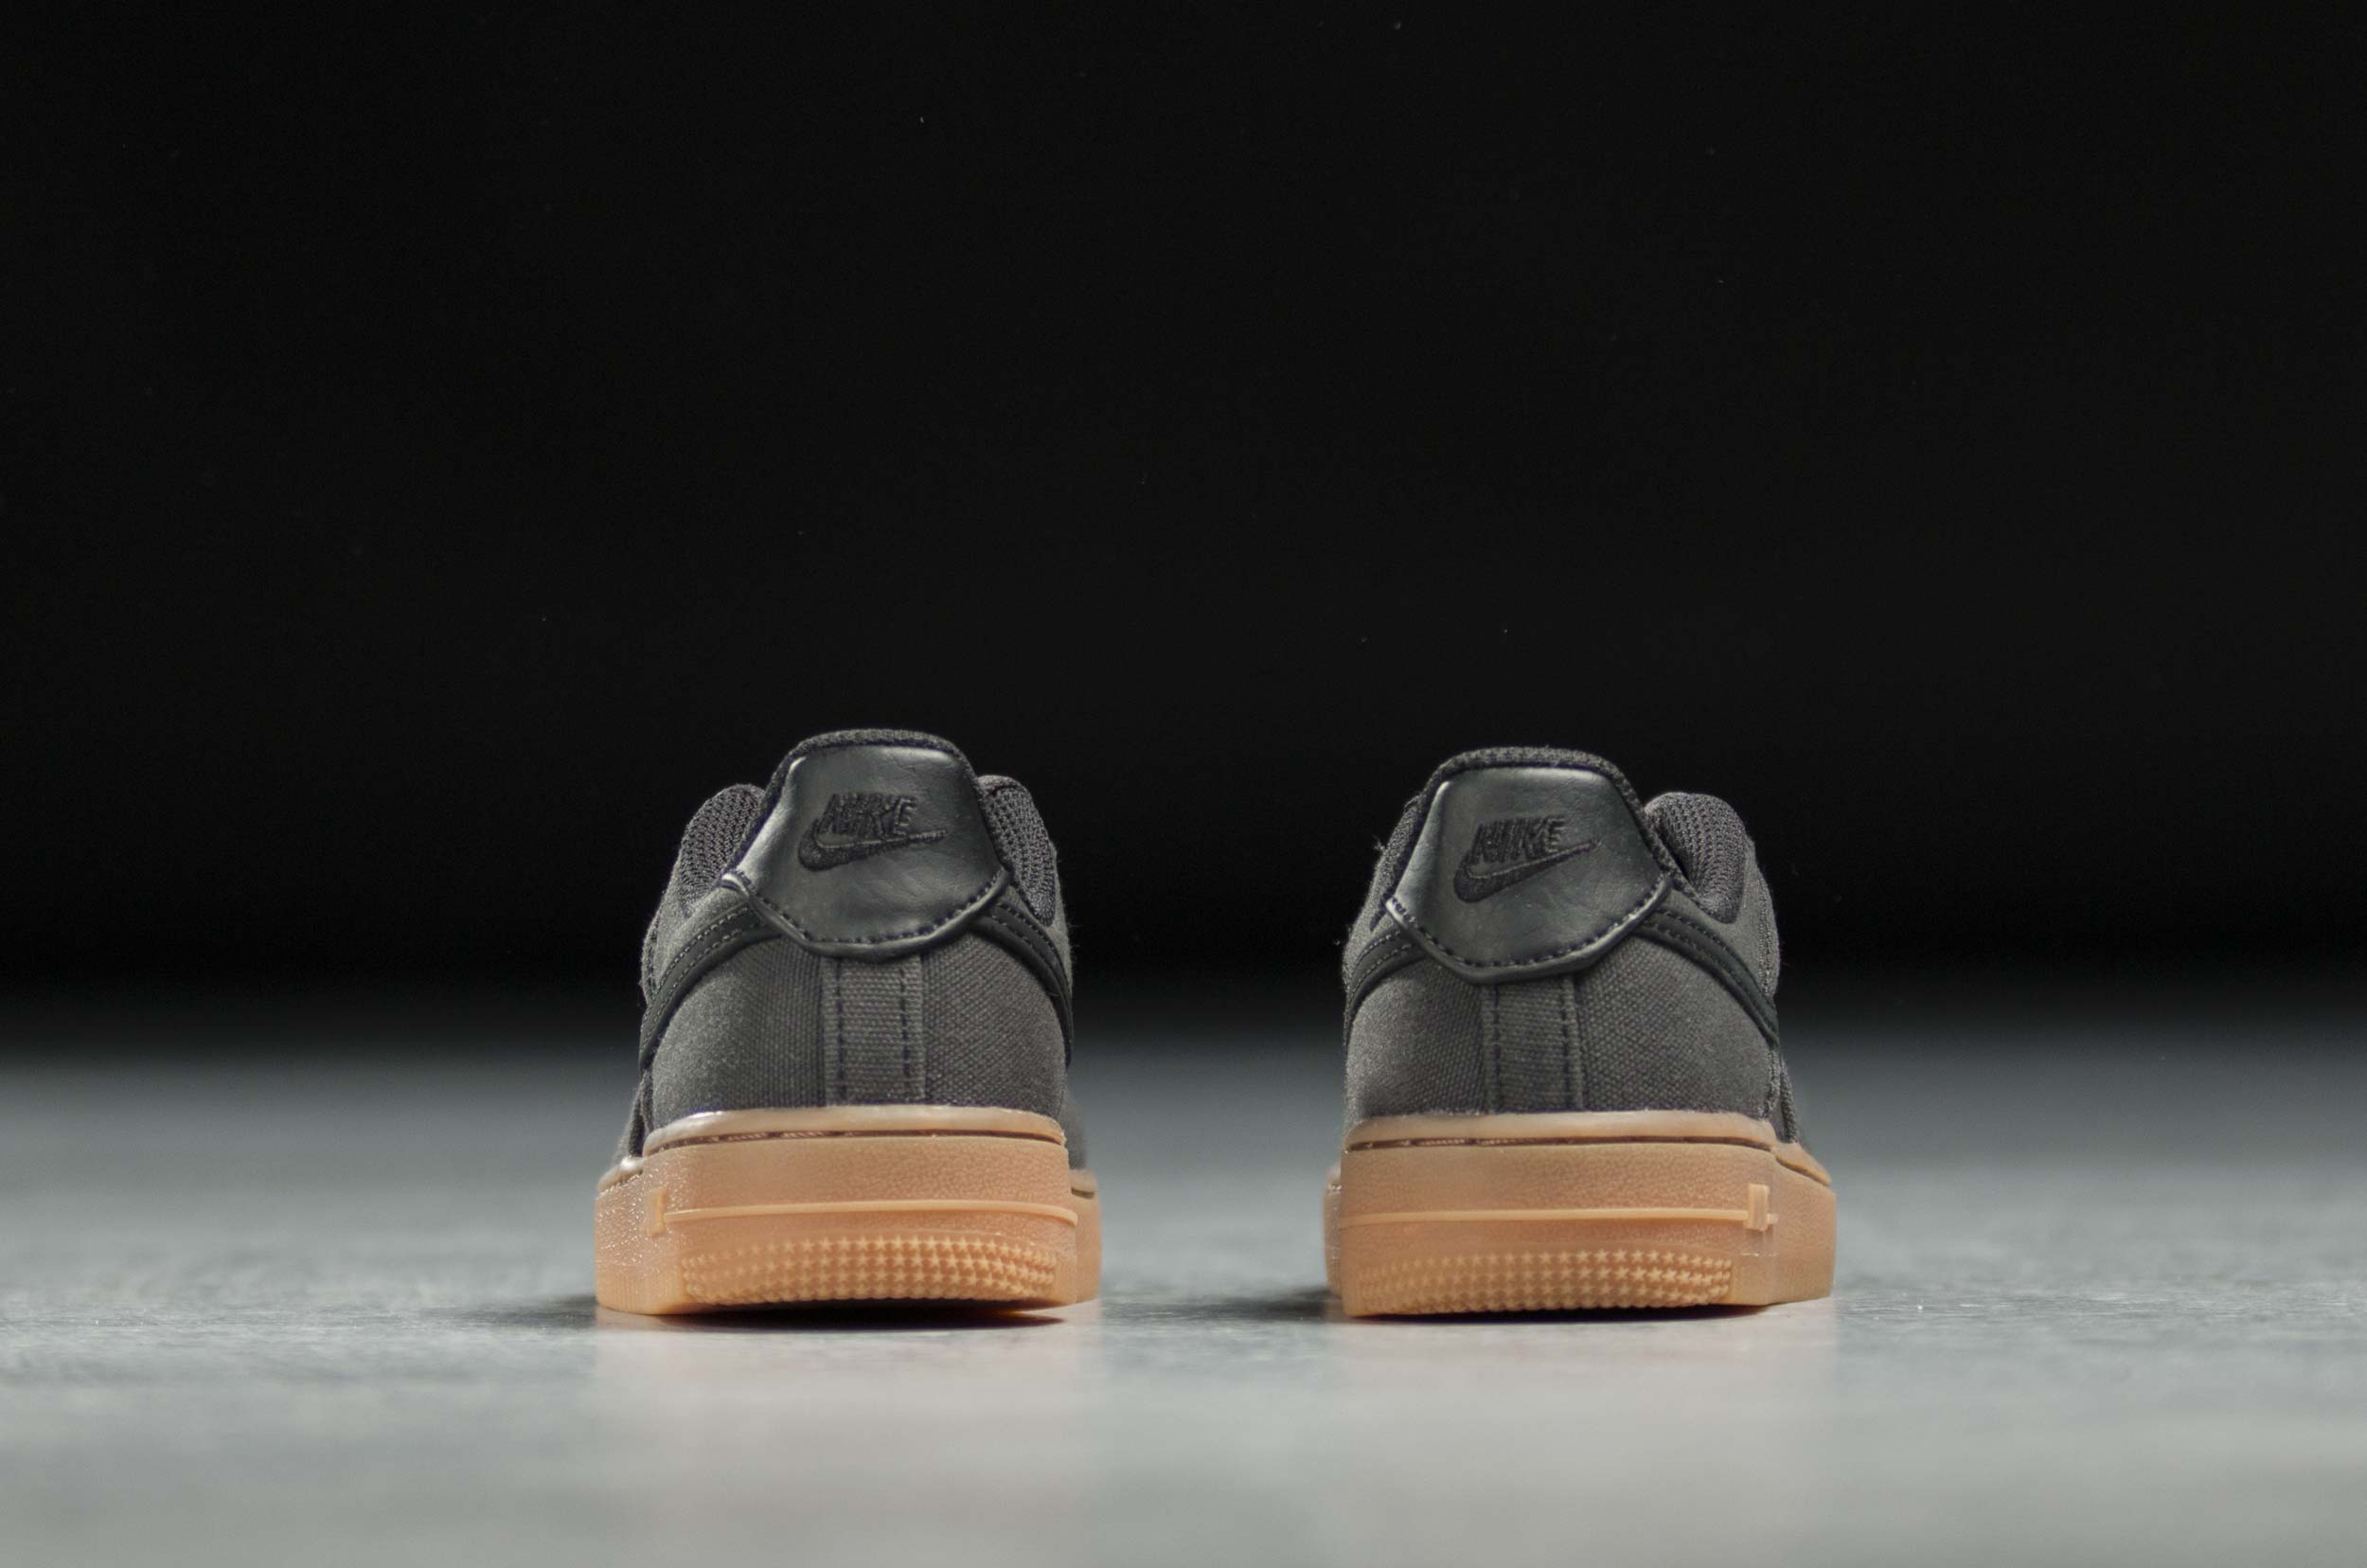 NIKE AIR FORCE 1 LV8 STYLE PS AV3525-001 Μαύρο